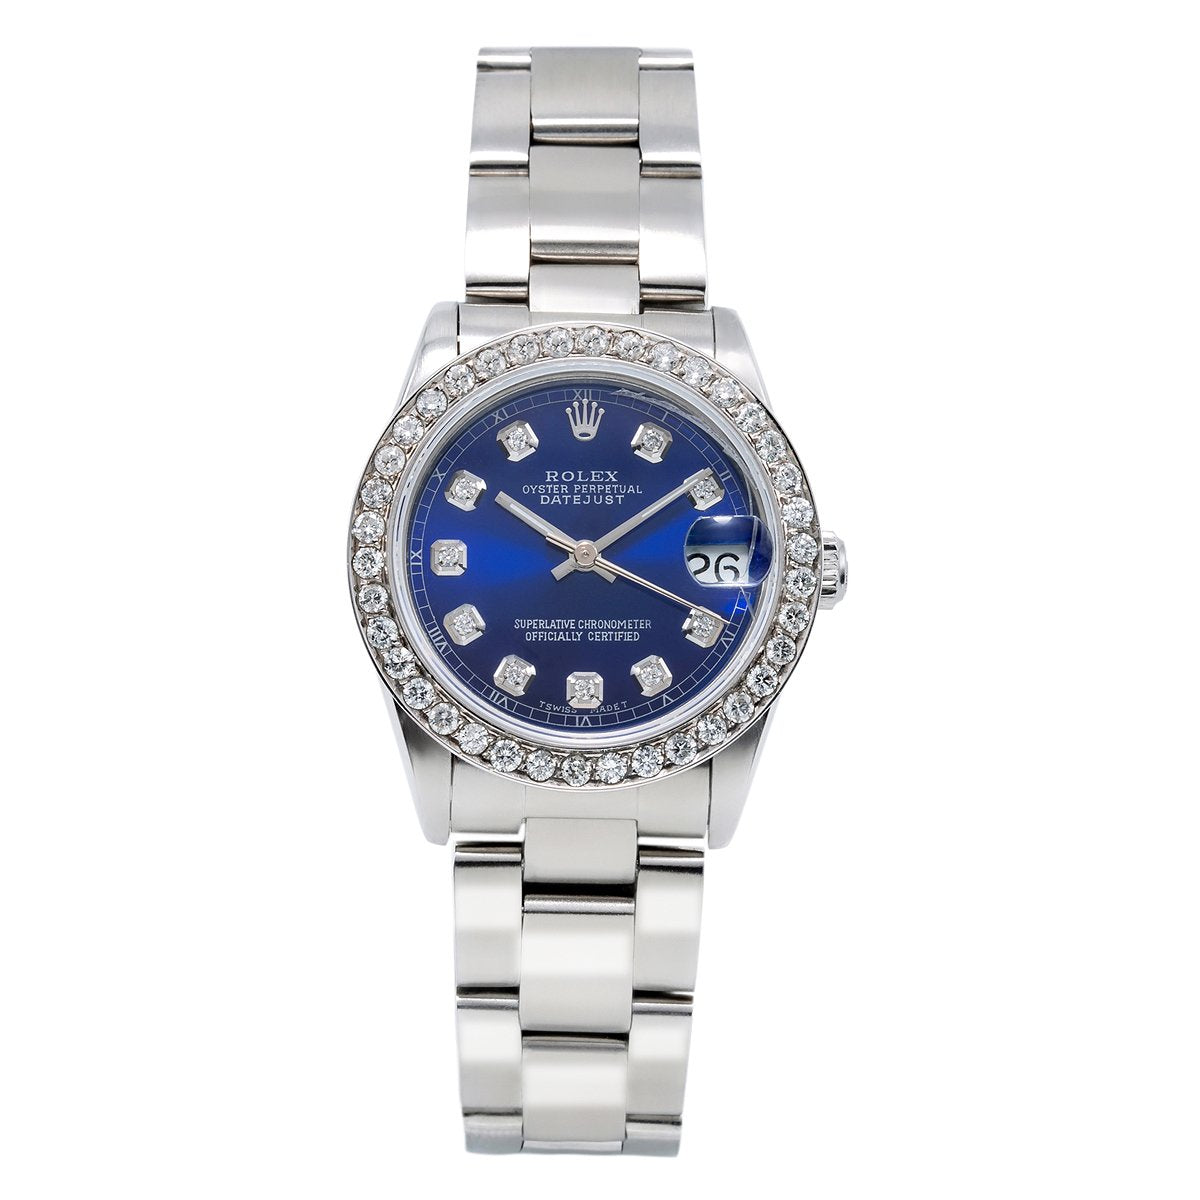 Rolex DateJust Diamond Watch, 68240 31mm, Blue Dial With 1.05CT Diamond Bezel